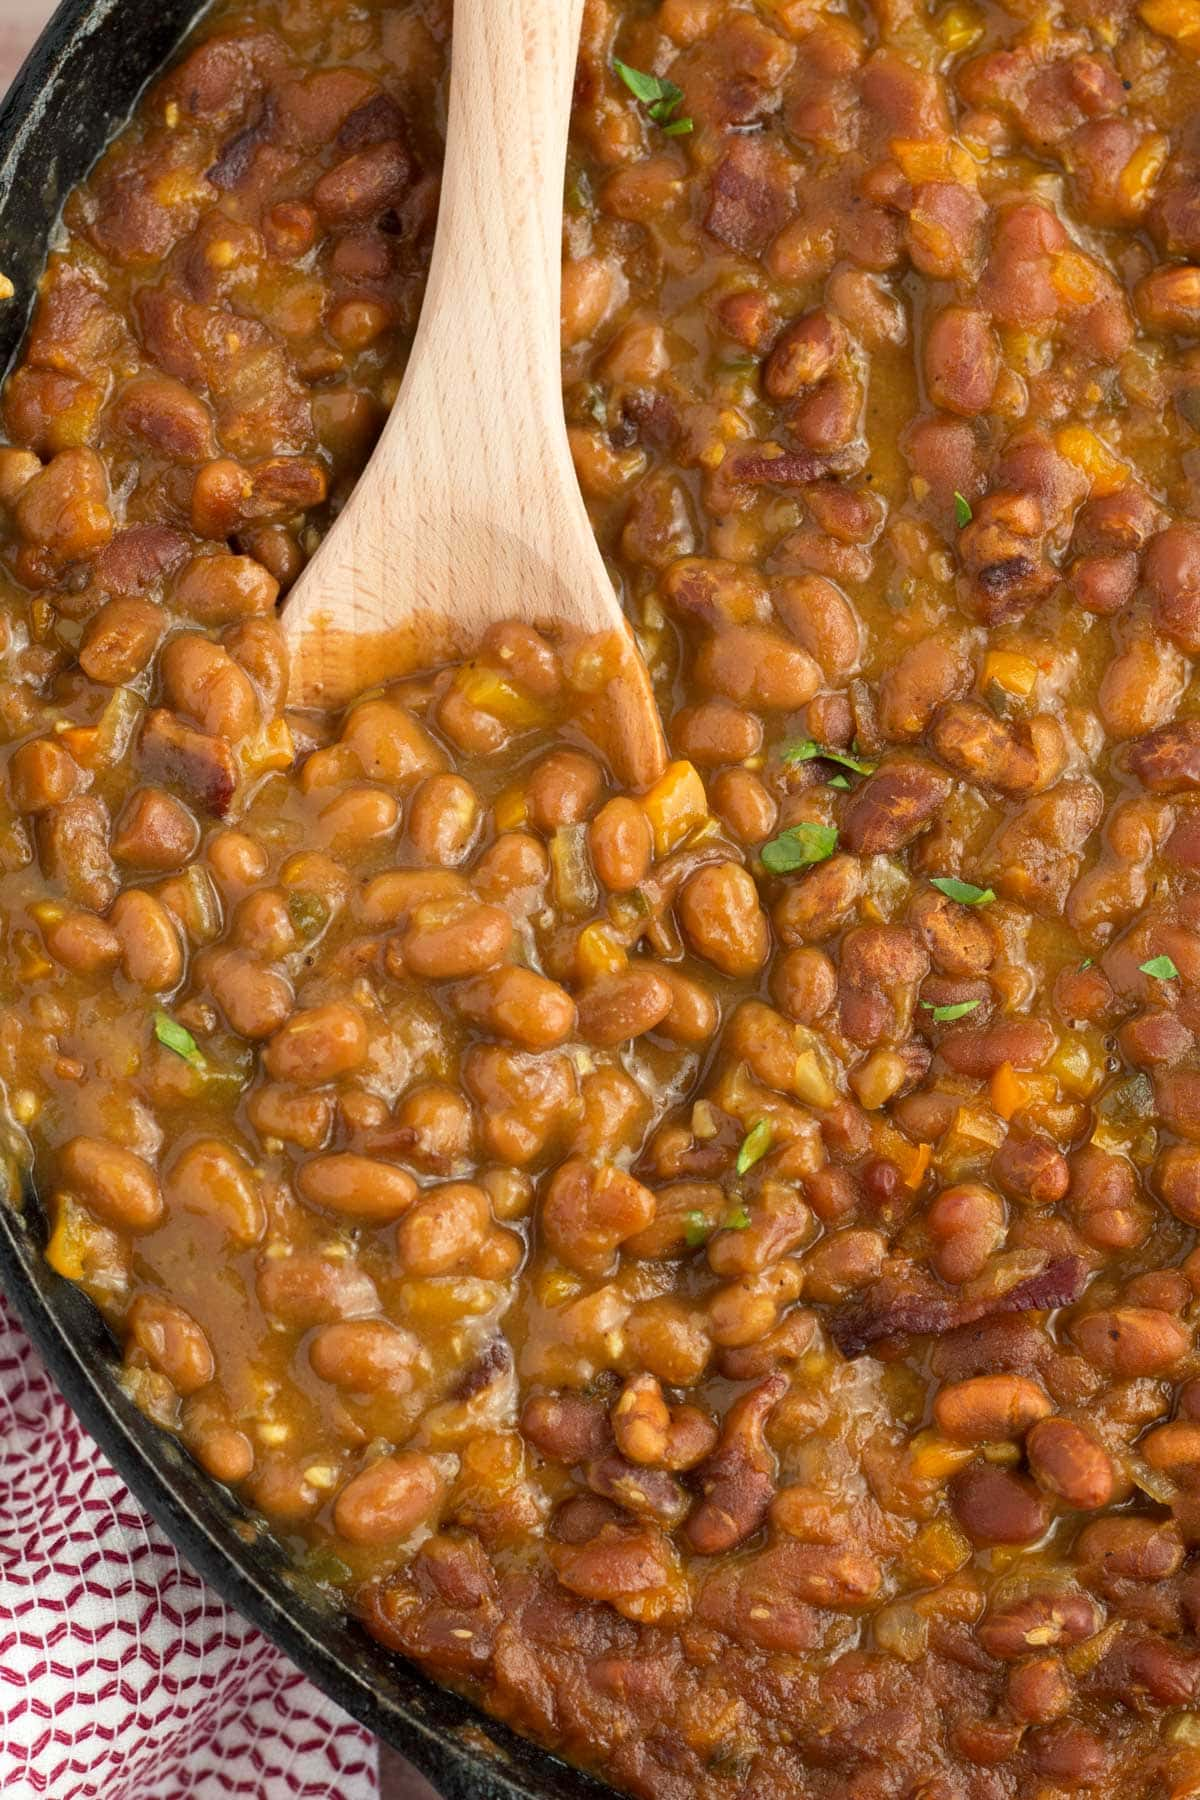 Canned beans in a thick and rich sauce flavored with bacon, pepper, onions, and garlic.